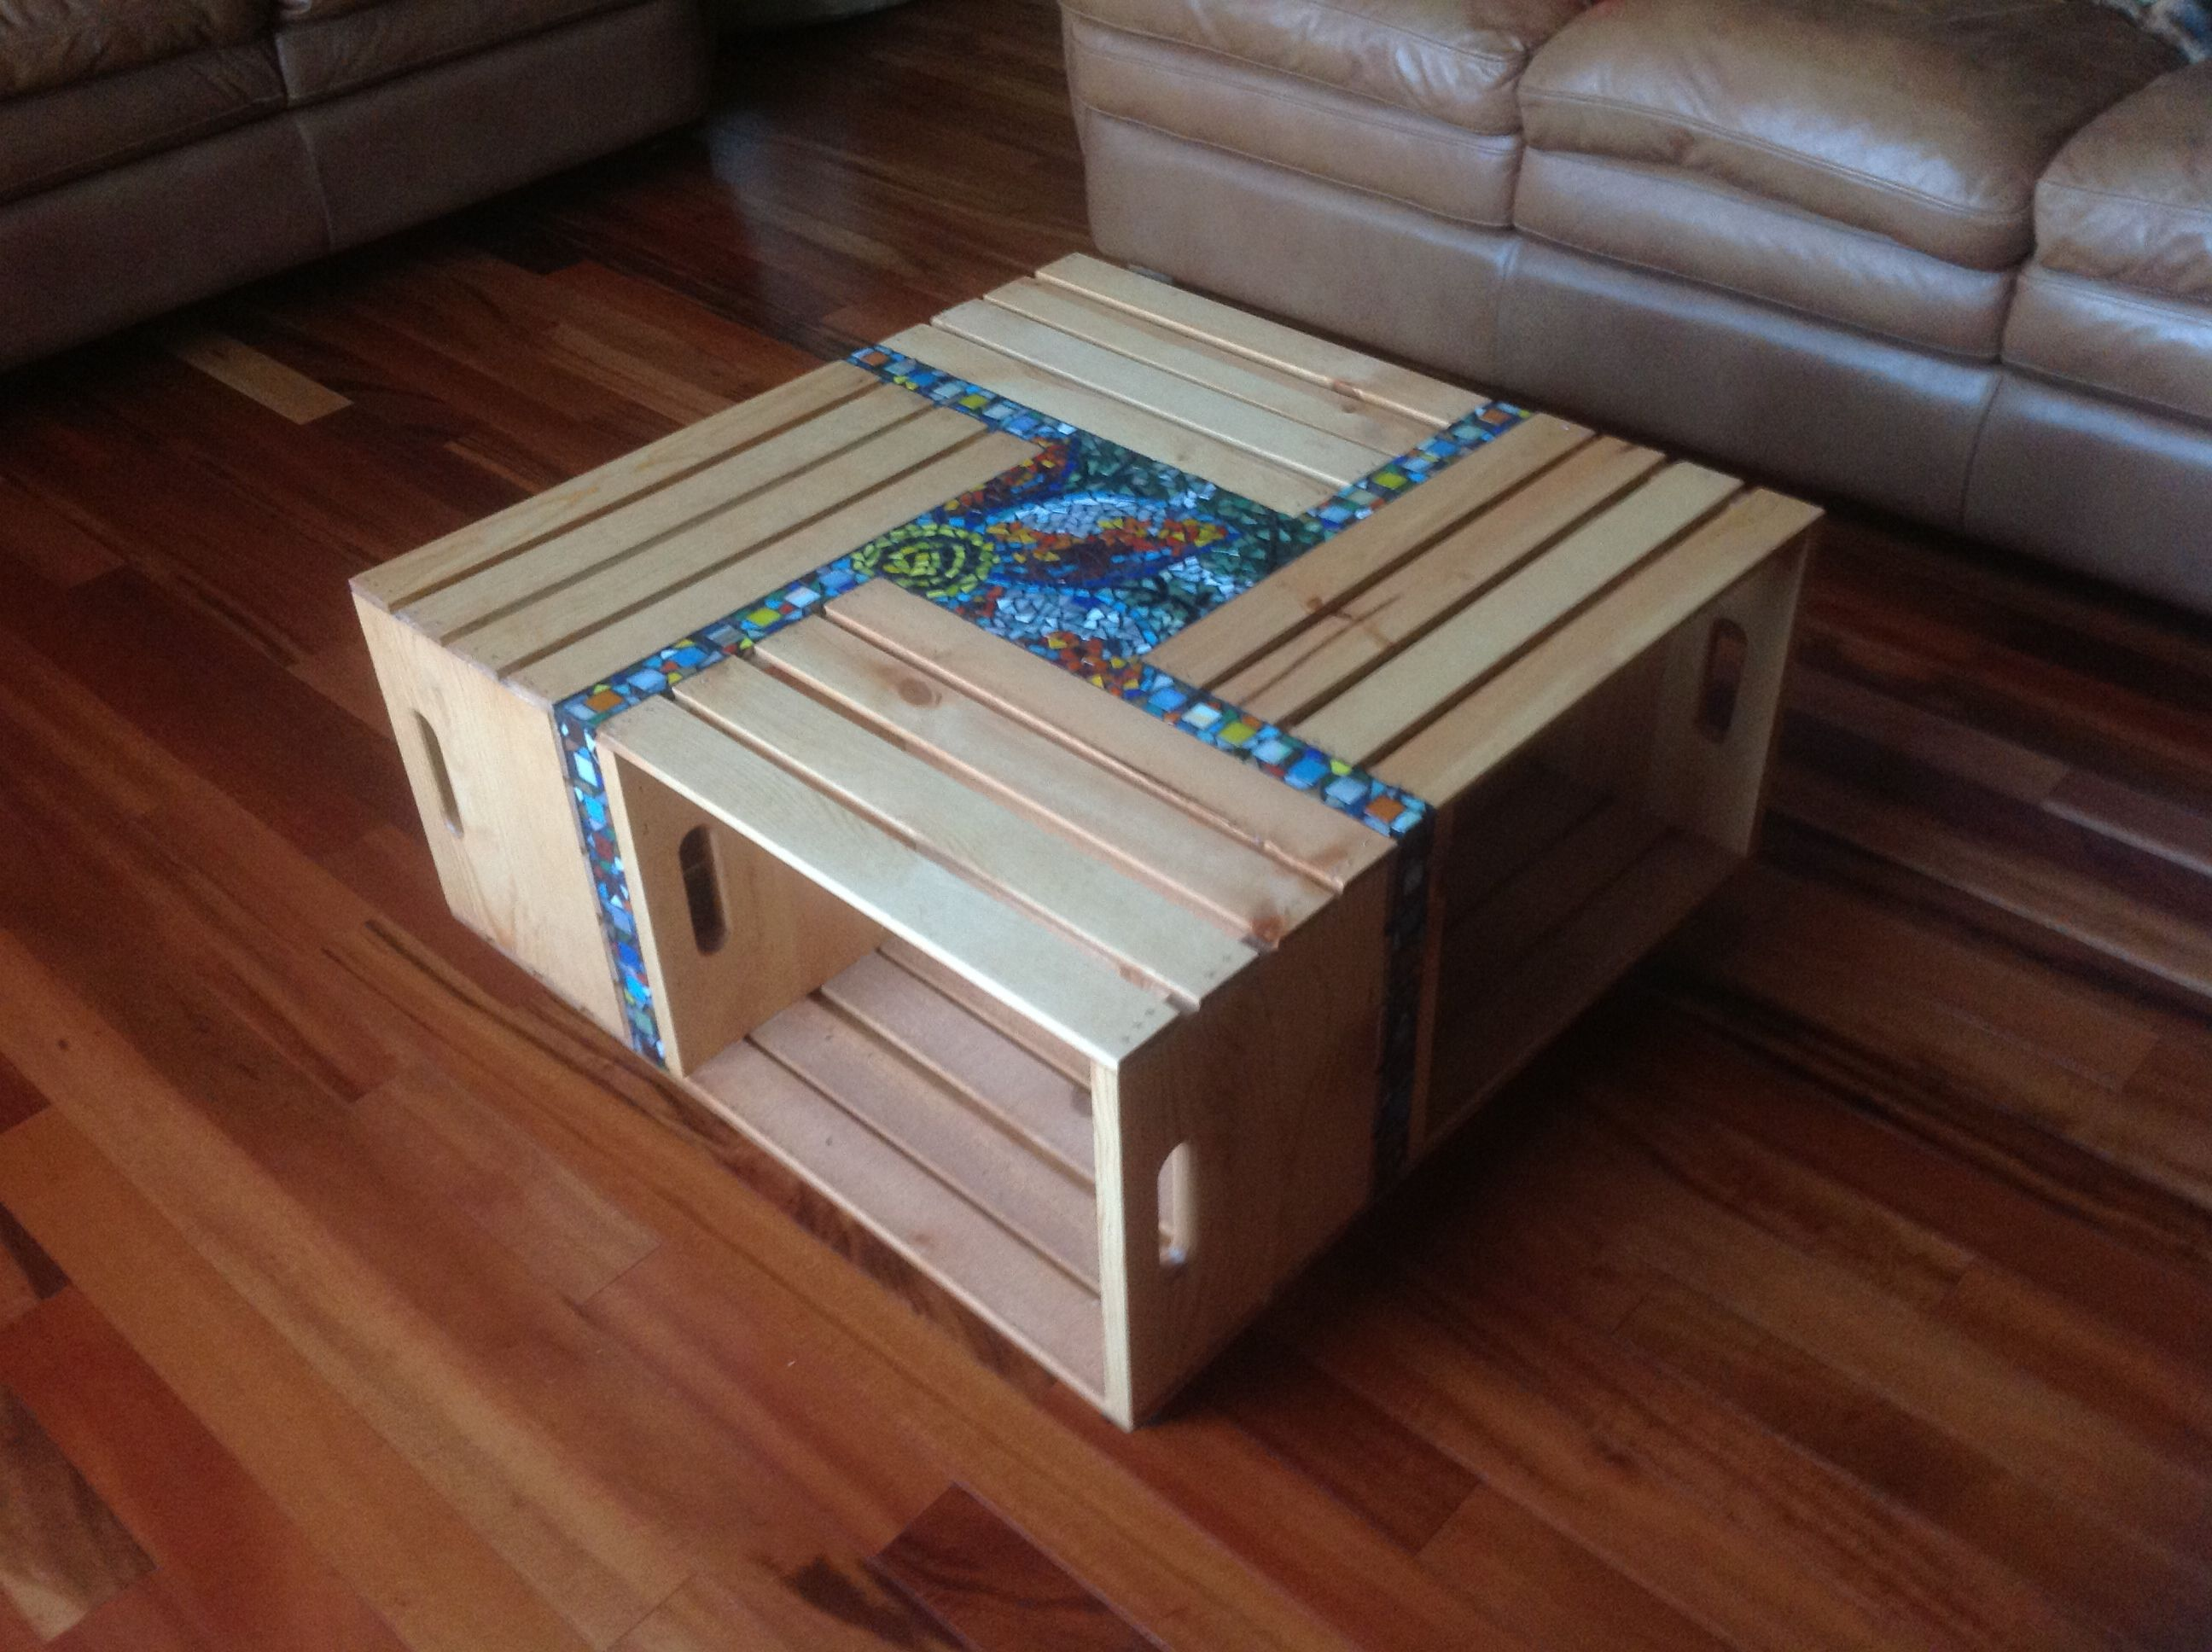 Pin By Marie Greve On Decor Ideas Diy Deck Furniture Mosaic Furniture Mosaic Coffee Table [ 1936 x 2592 Pixel ]